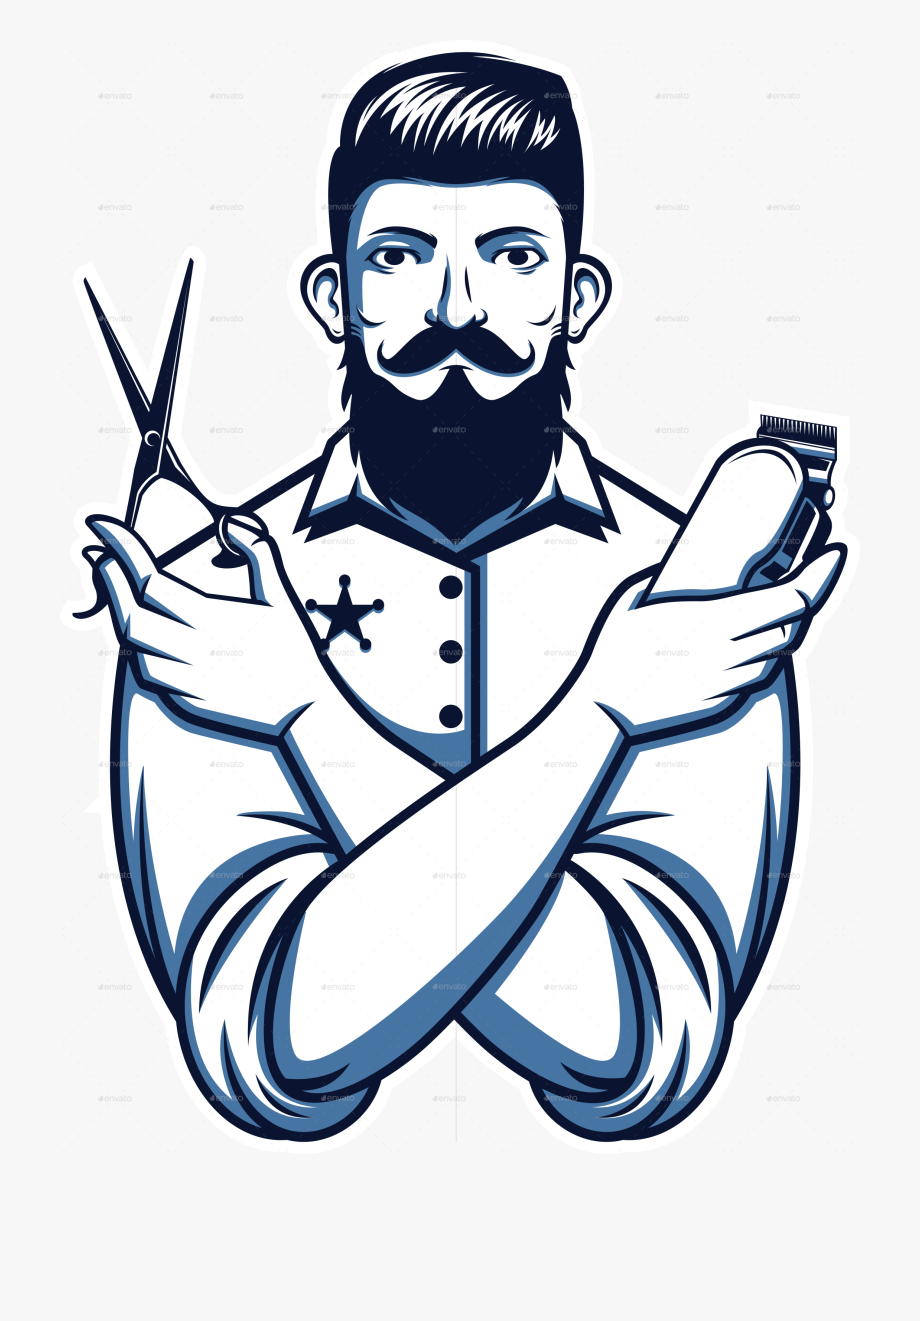 svg royalty free Beard fancy man png. Barber clipart